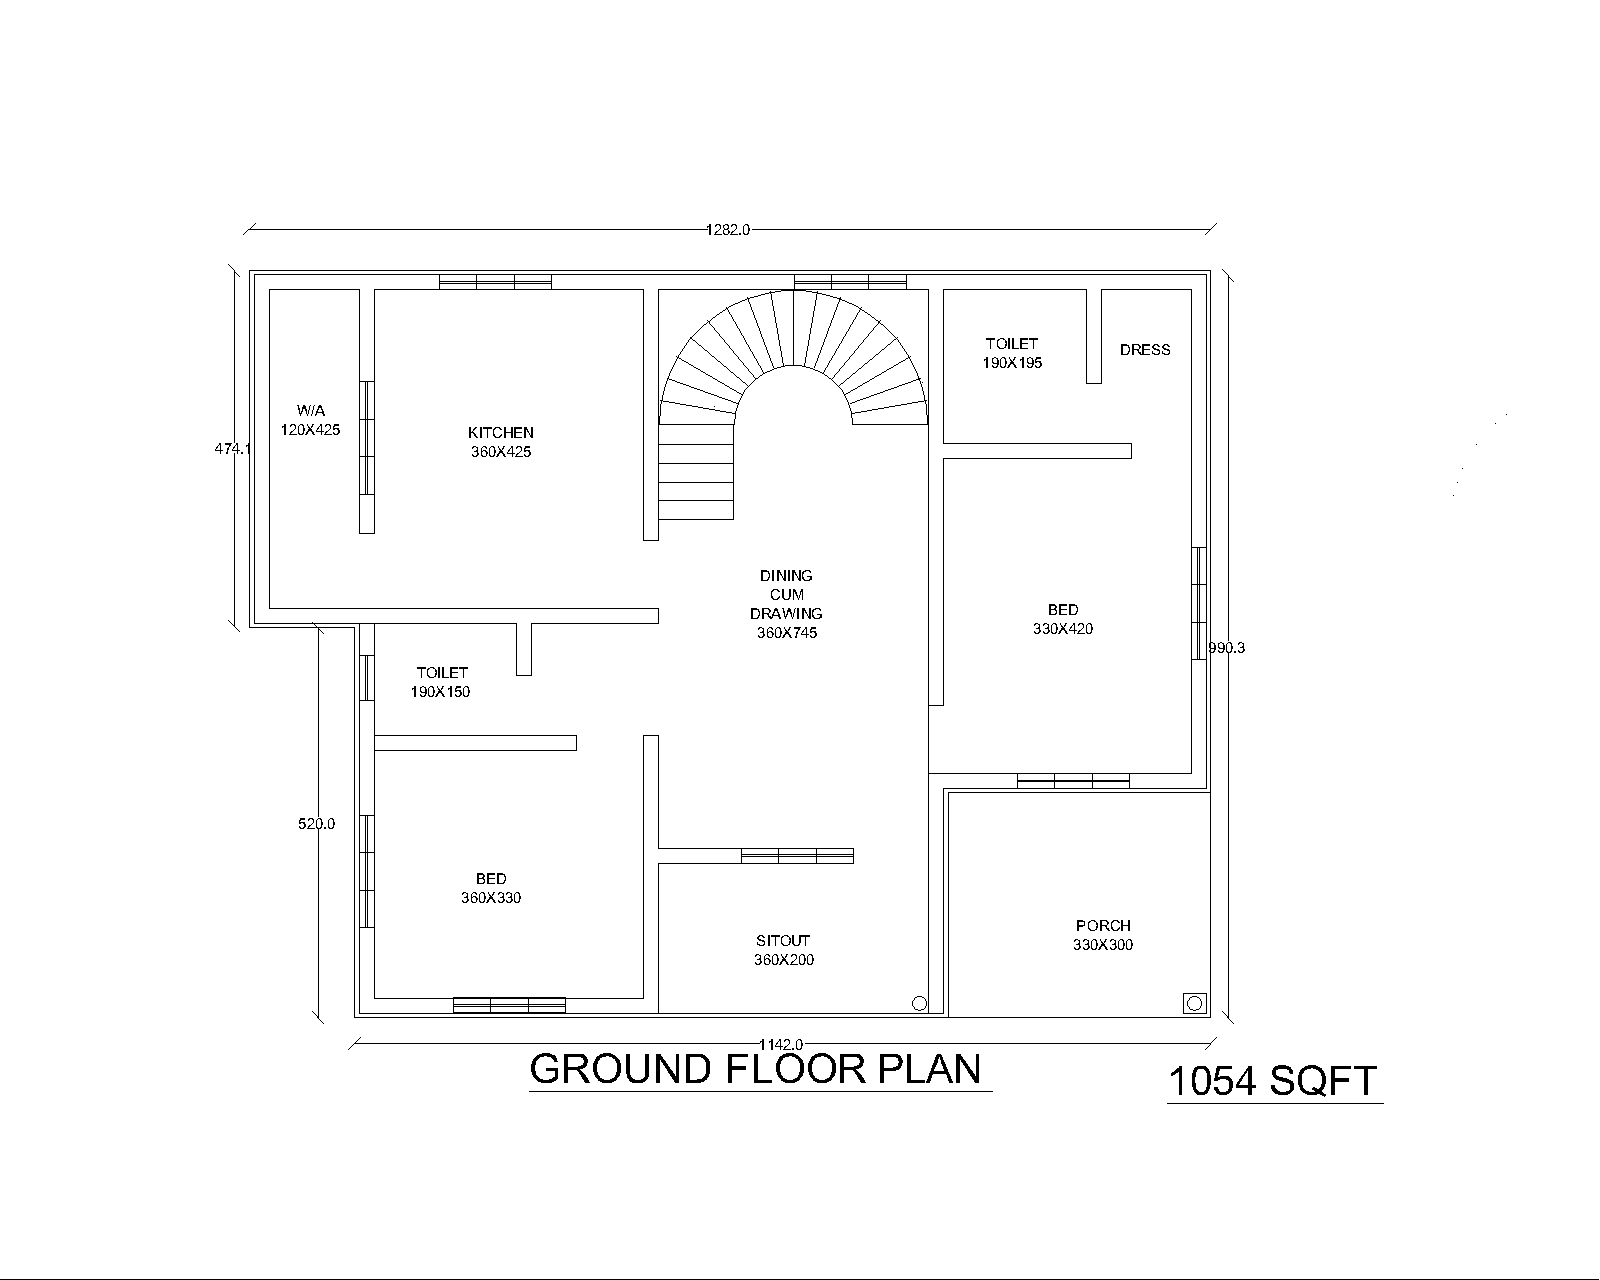 800 sq ft house plans 3 bedroom kts s com 1200 sq ft house plan india duplex plans in for 1000 800 sq ft house